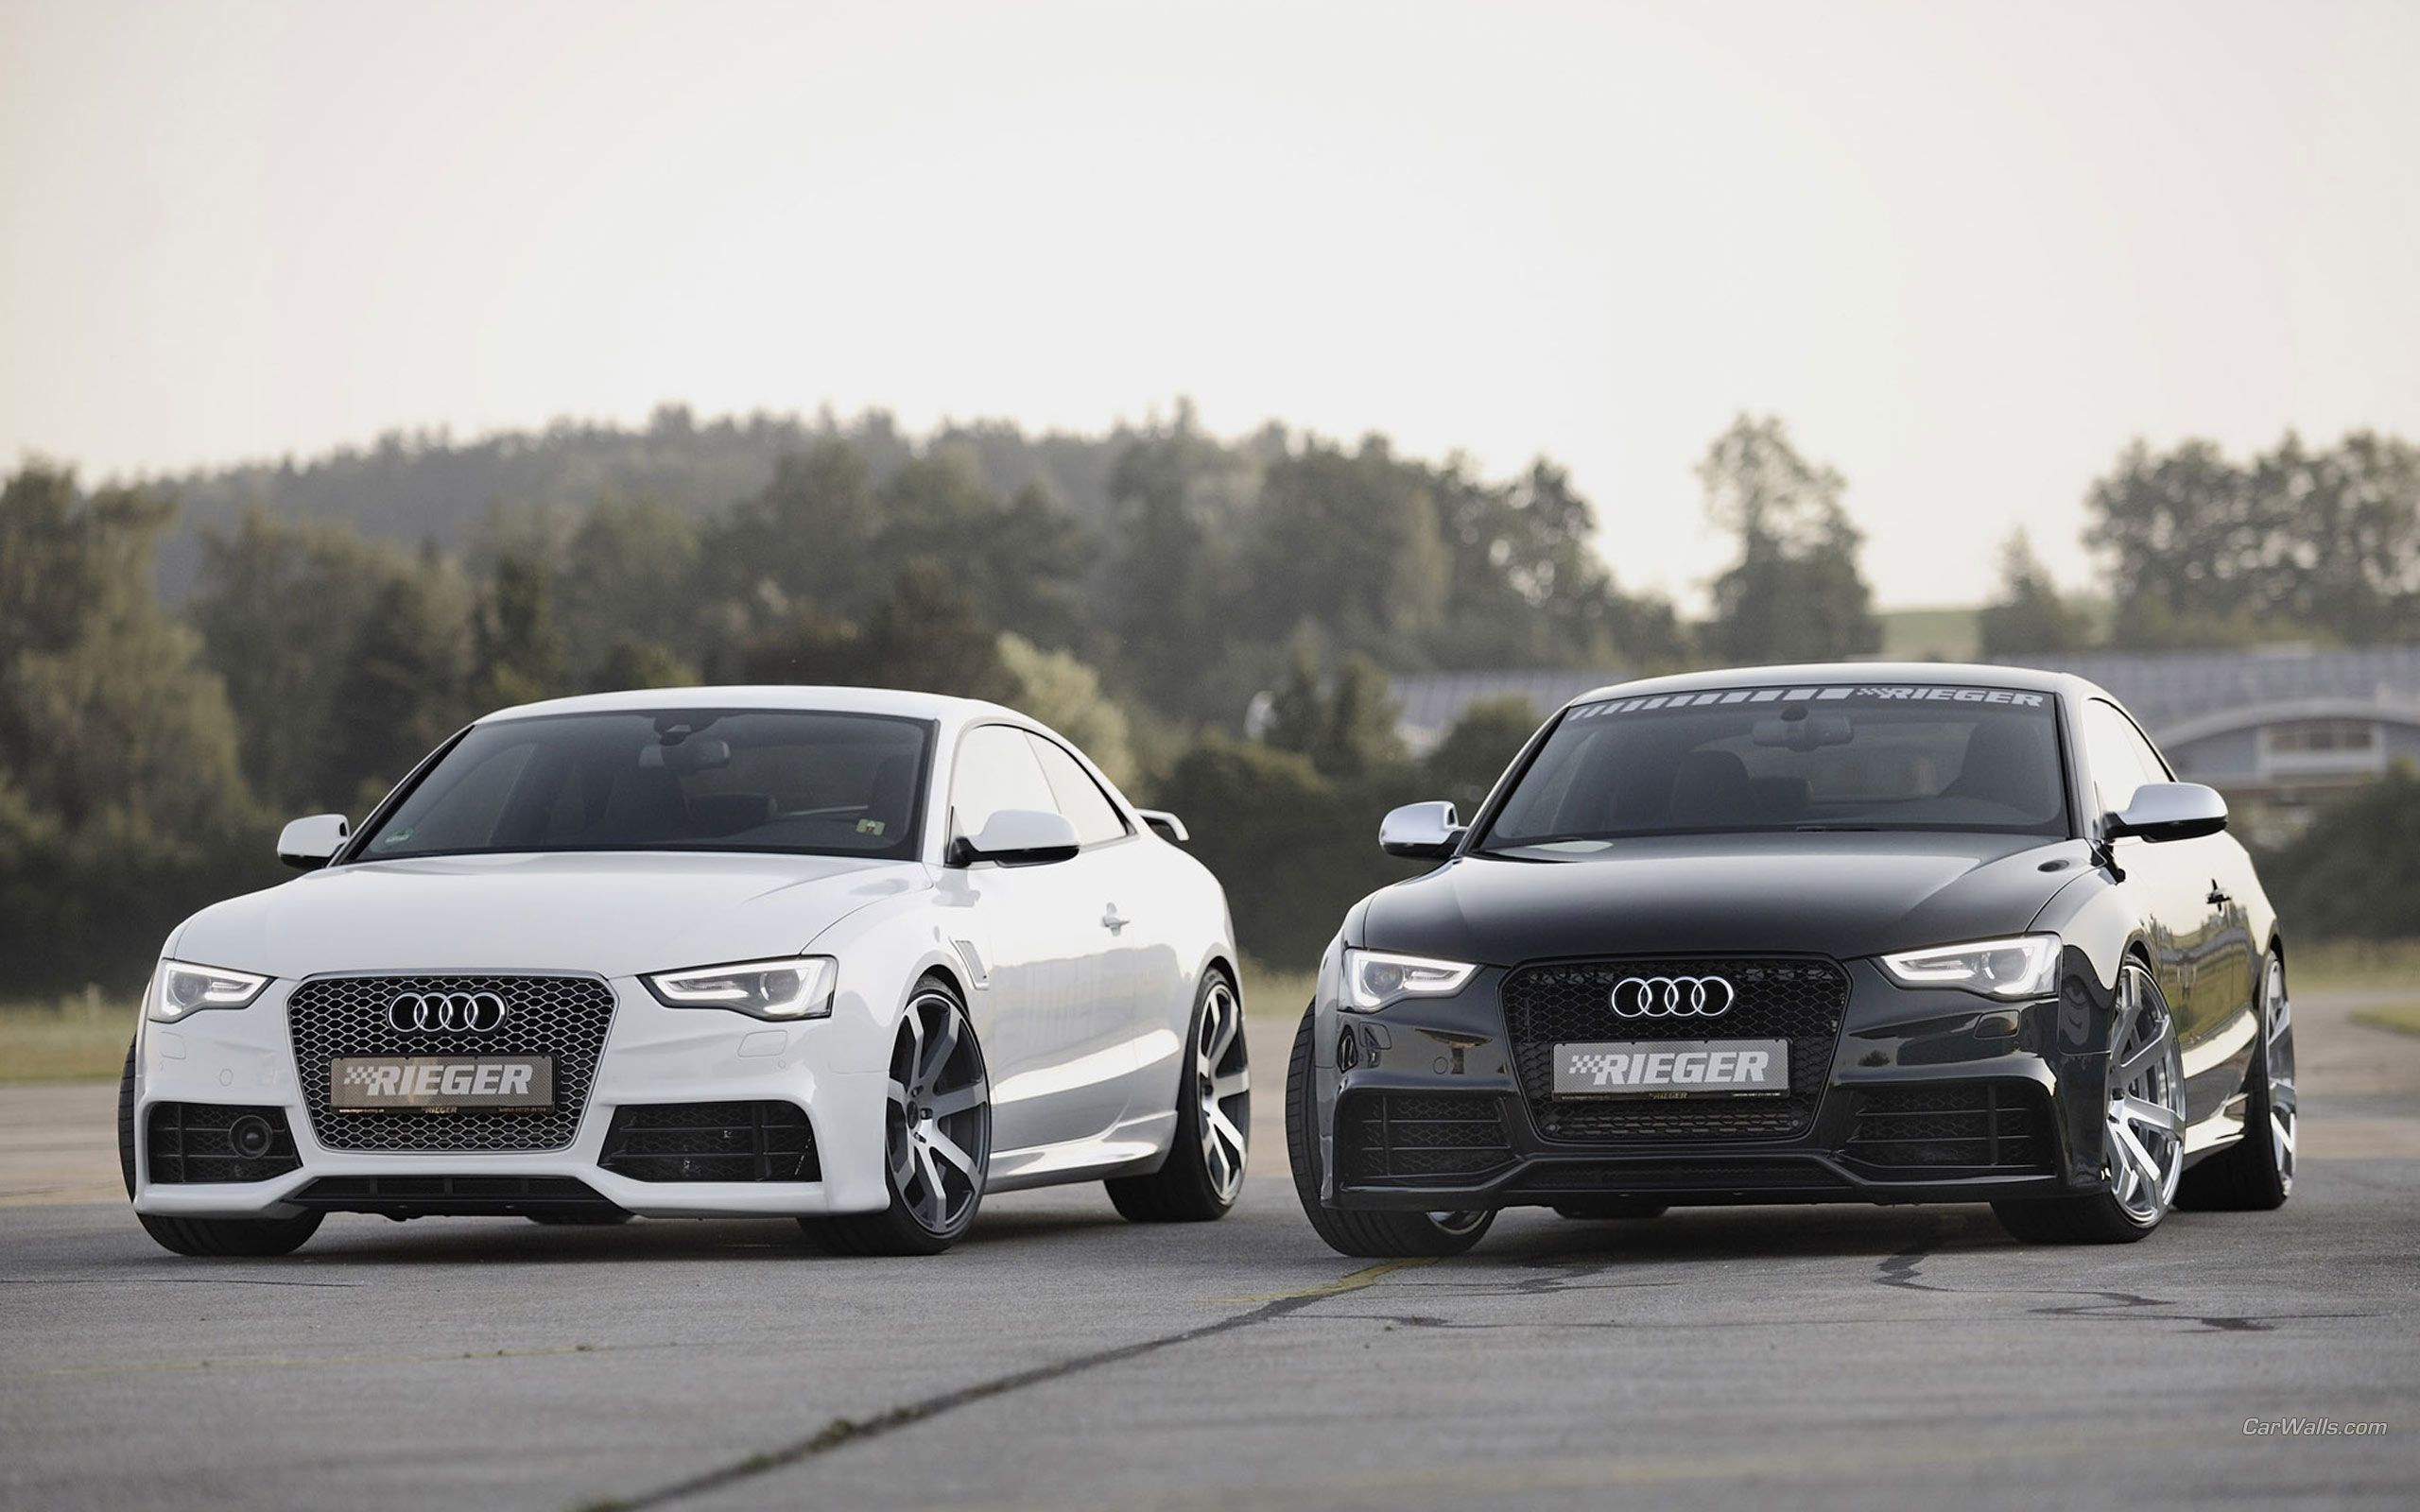 2560x1600 - Audi A5 Wallpapers 10